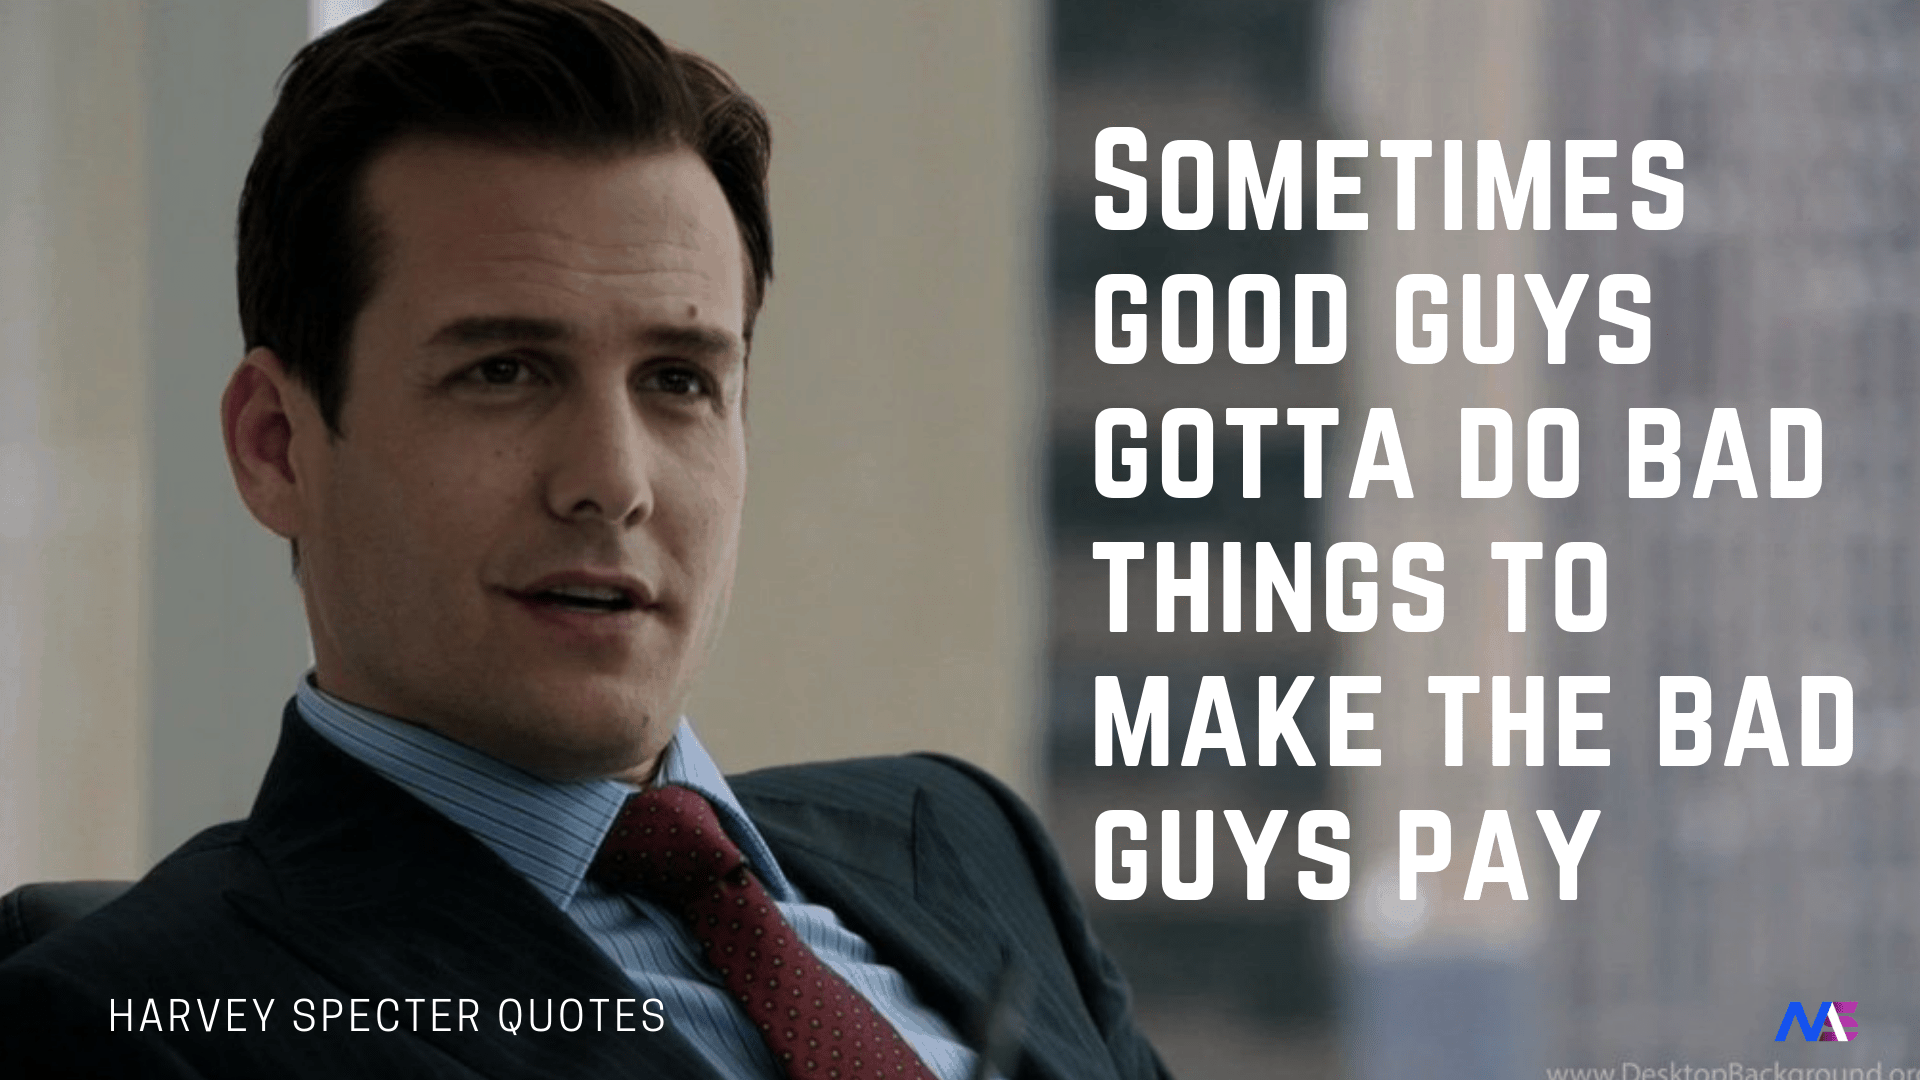 27 Witty & Badass Harvey Specter Quotes That Will Motivate You